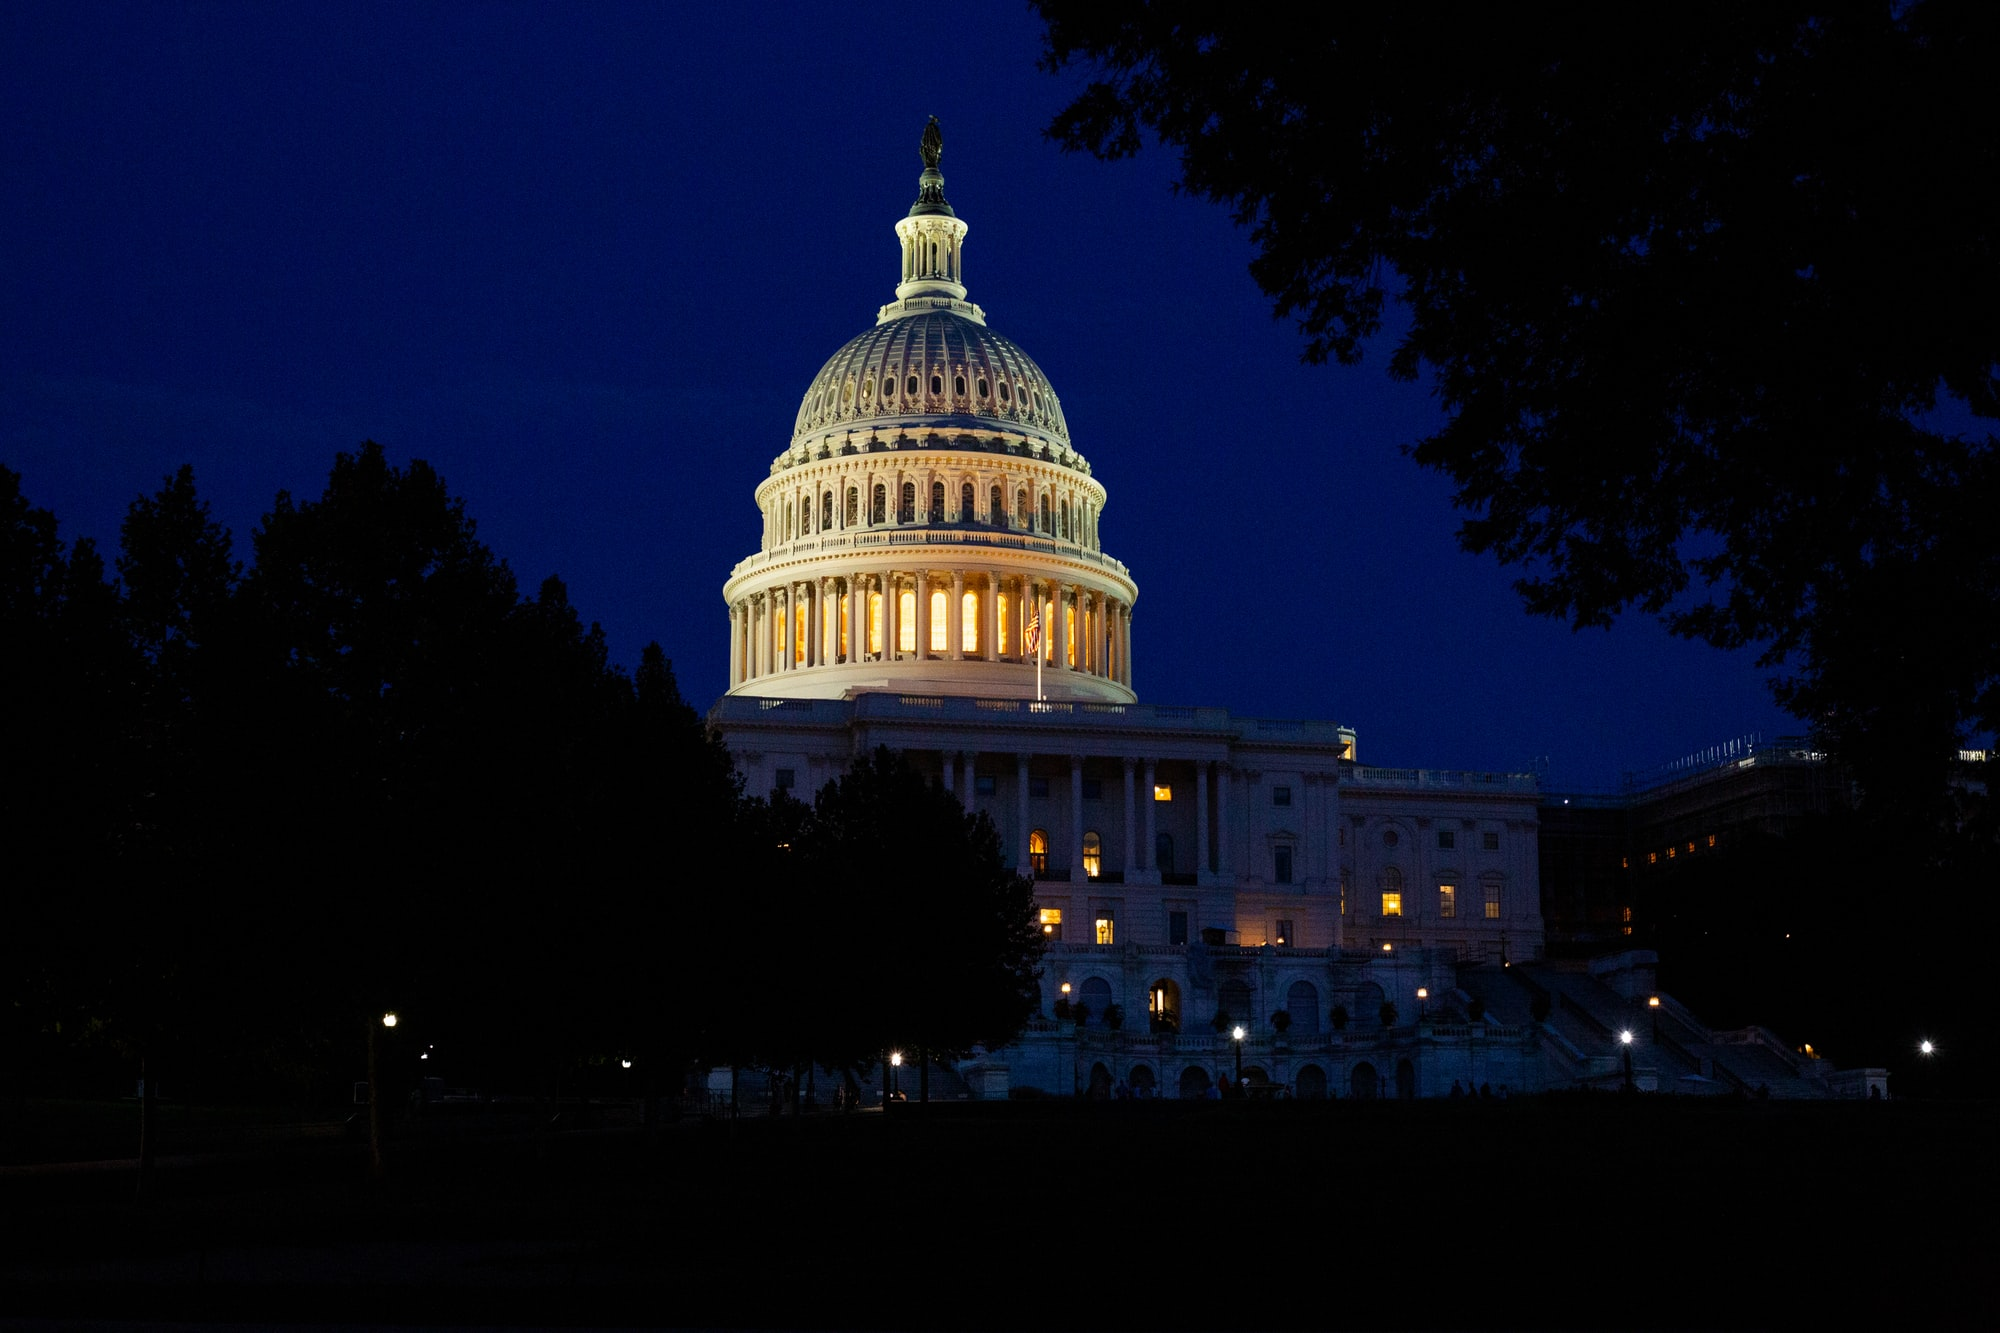 New Potential Cybersecurity Bills in front of Congress